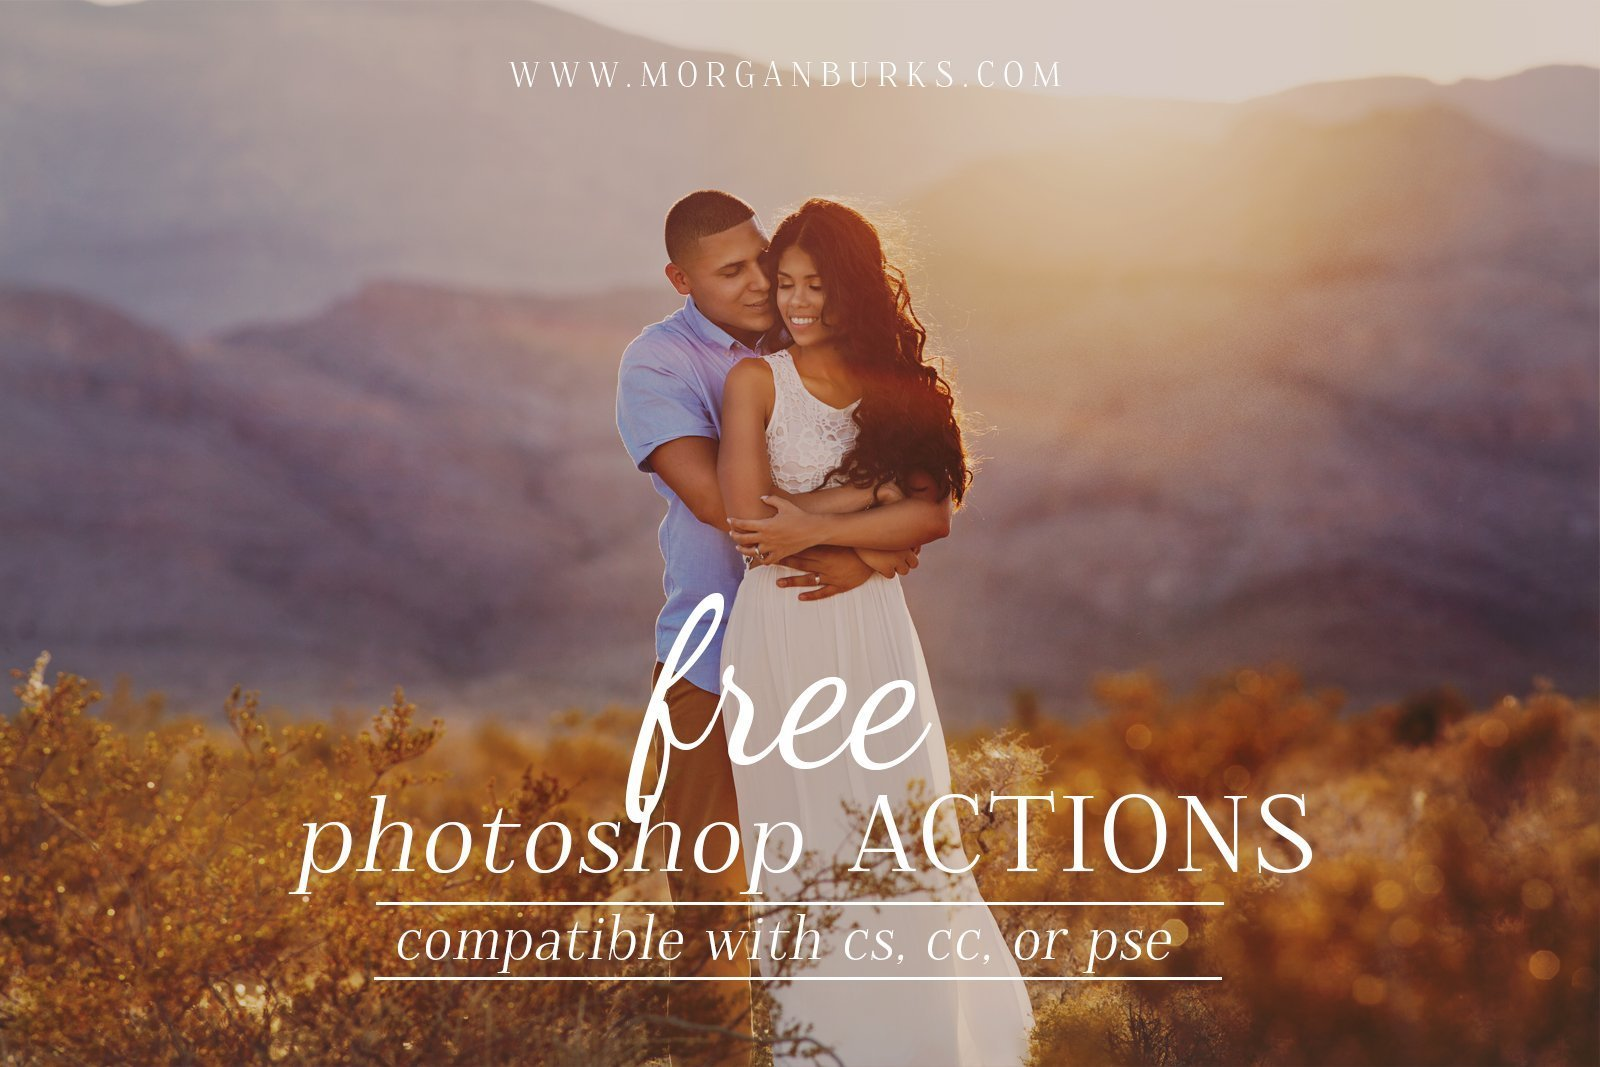 Free-Photoshop-Actions-One-Fell-Swoop